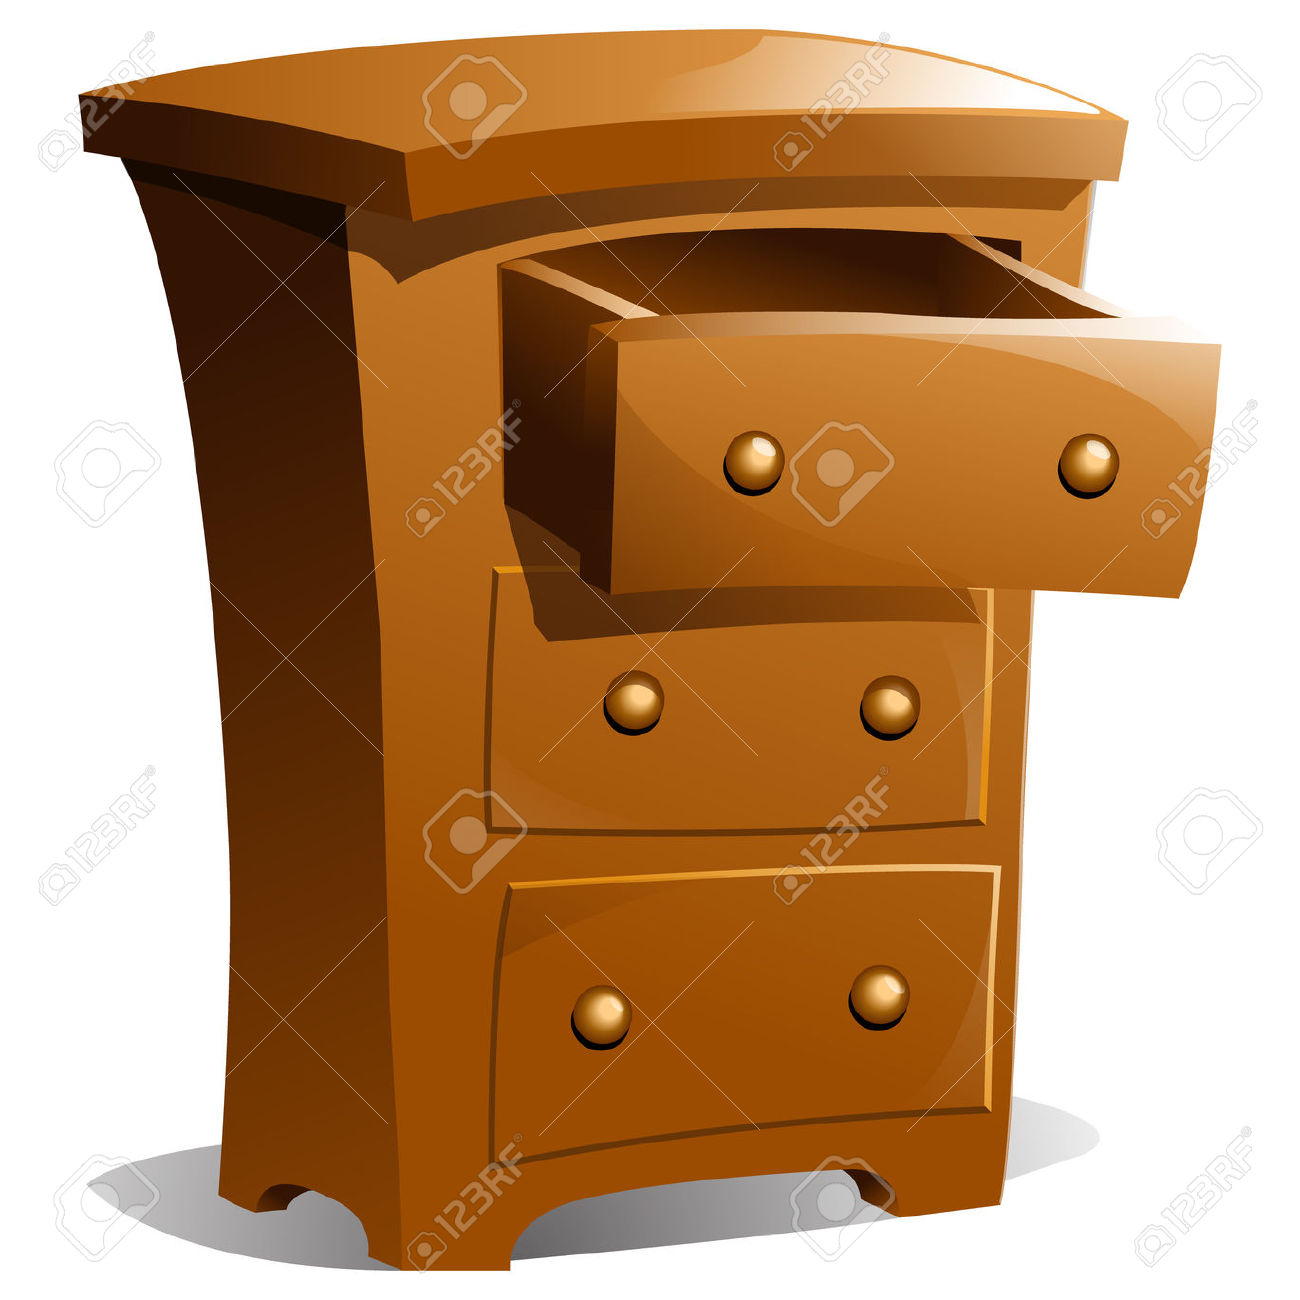 Dresser drawer clipart.